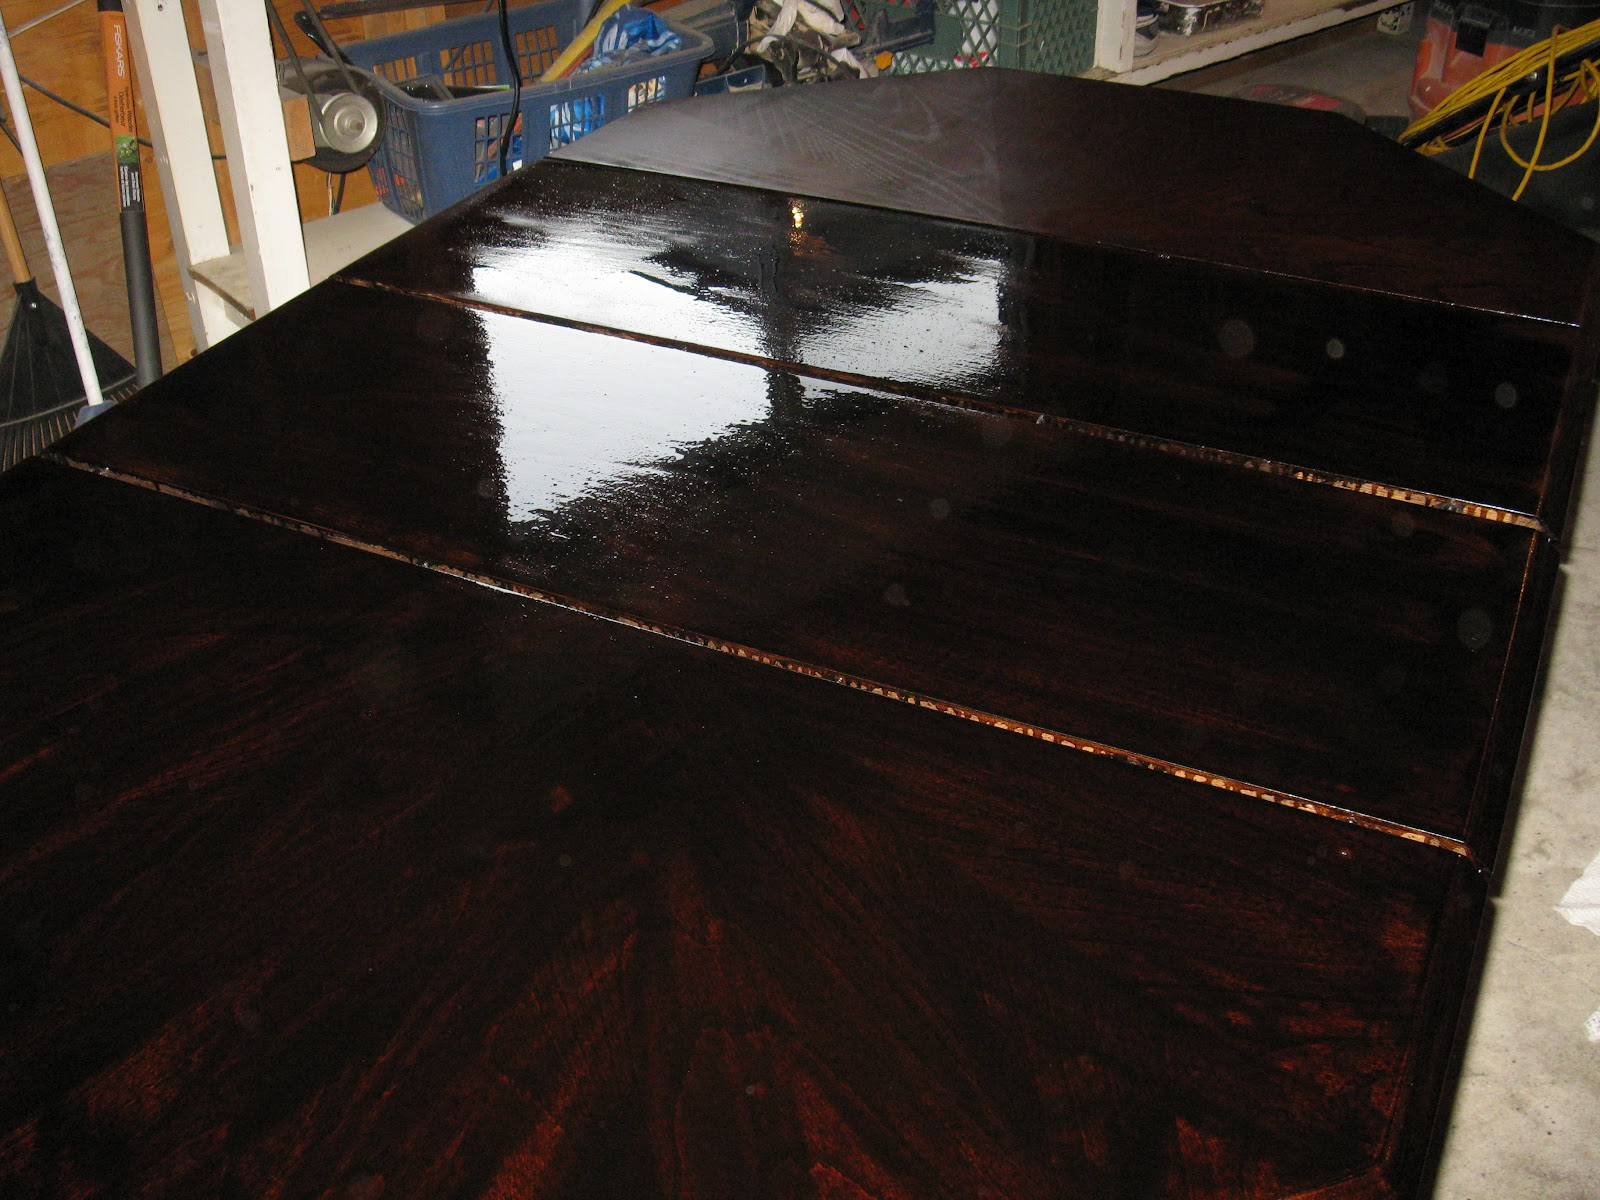 This time i applied dark walnut stain by minwax and let it sit for 20